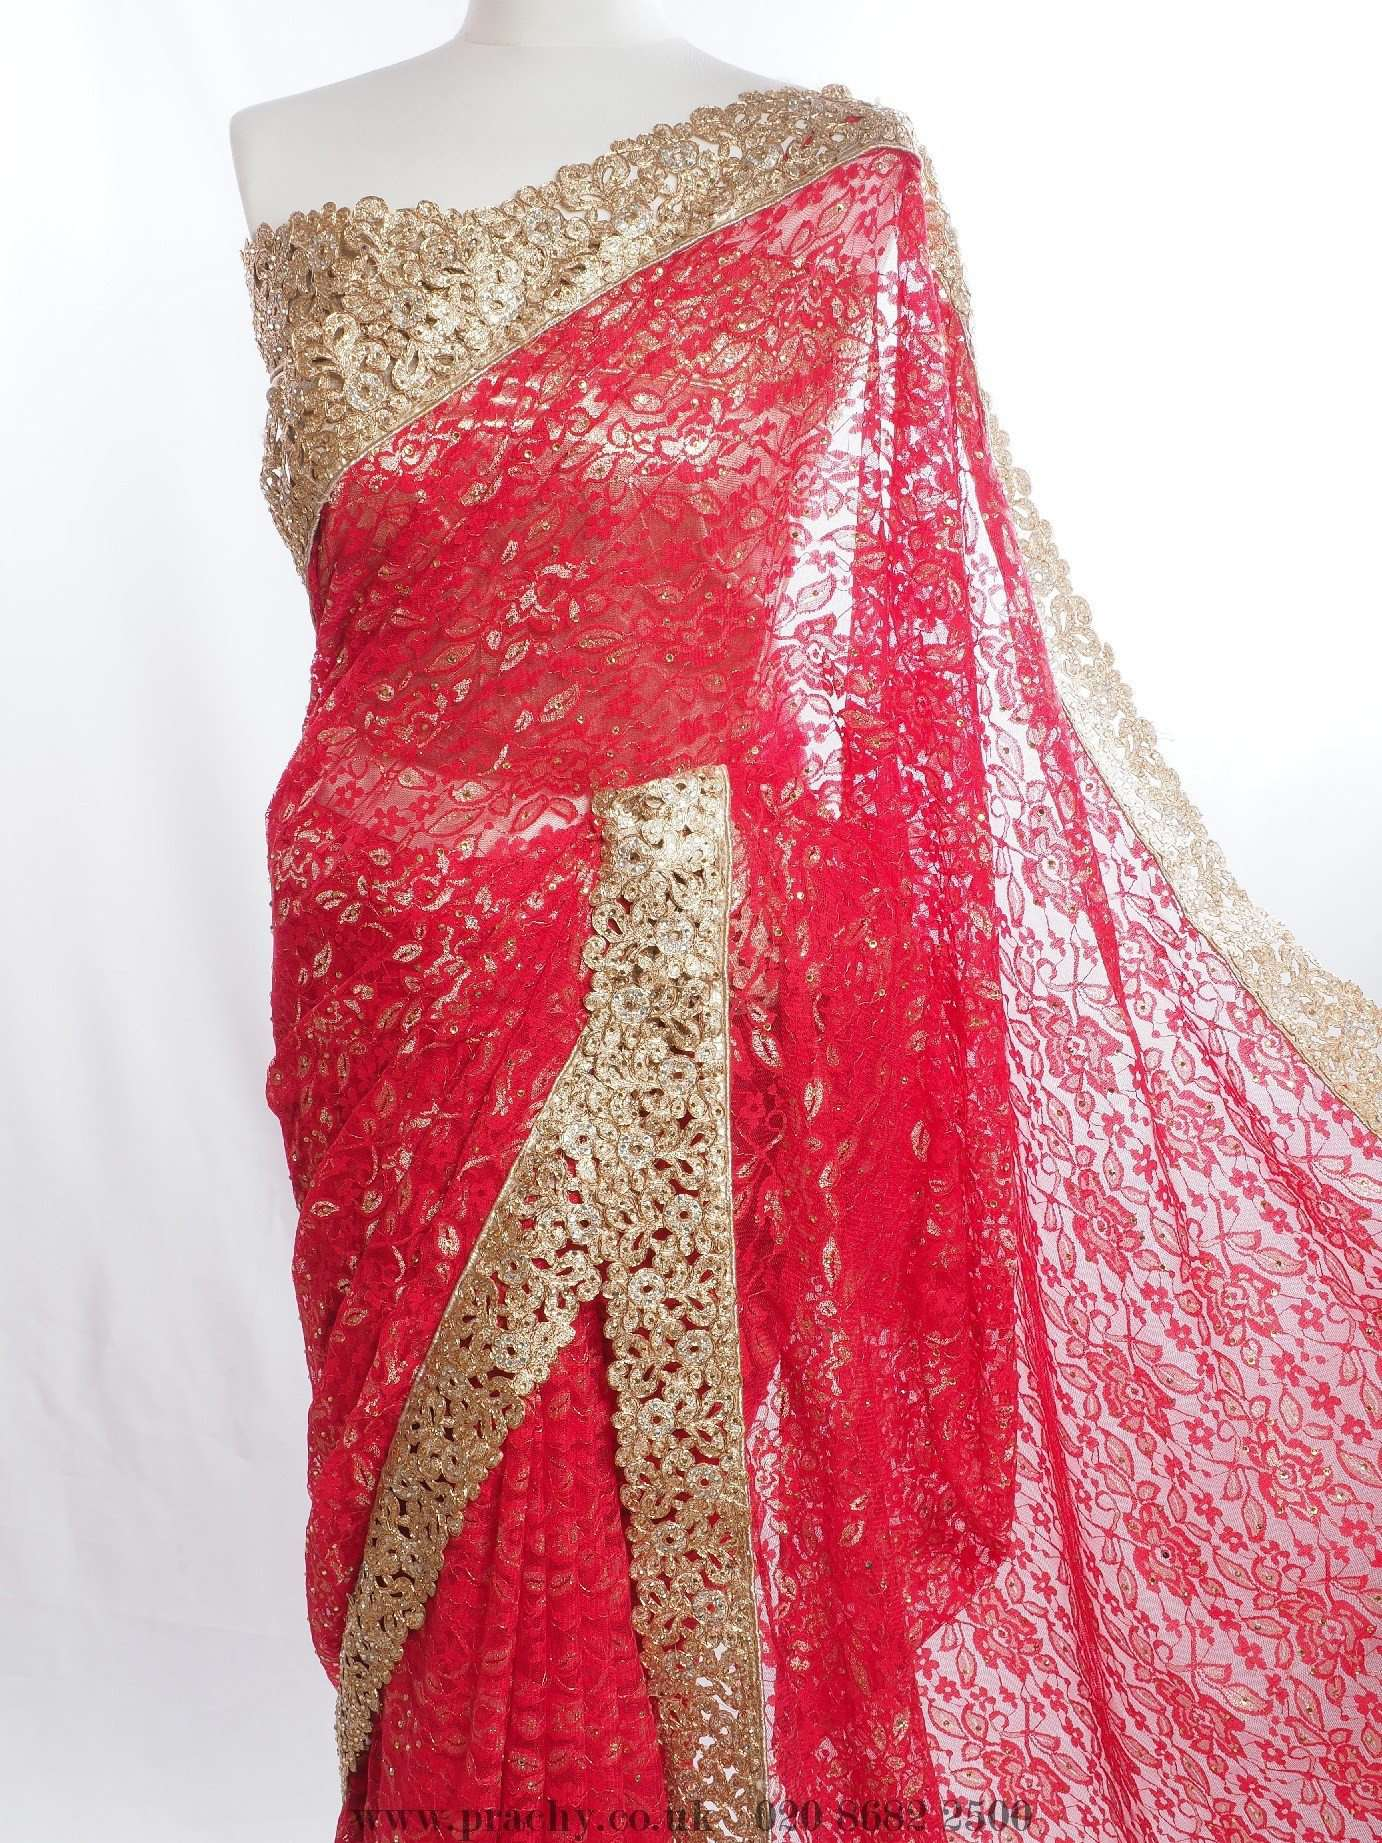 Lace saree for Bollywood Party, Weddings - PTC 936 - tp 0516 - Prachy Creations